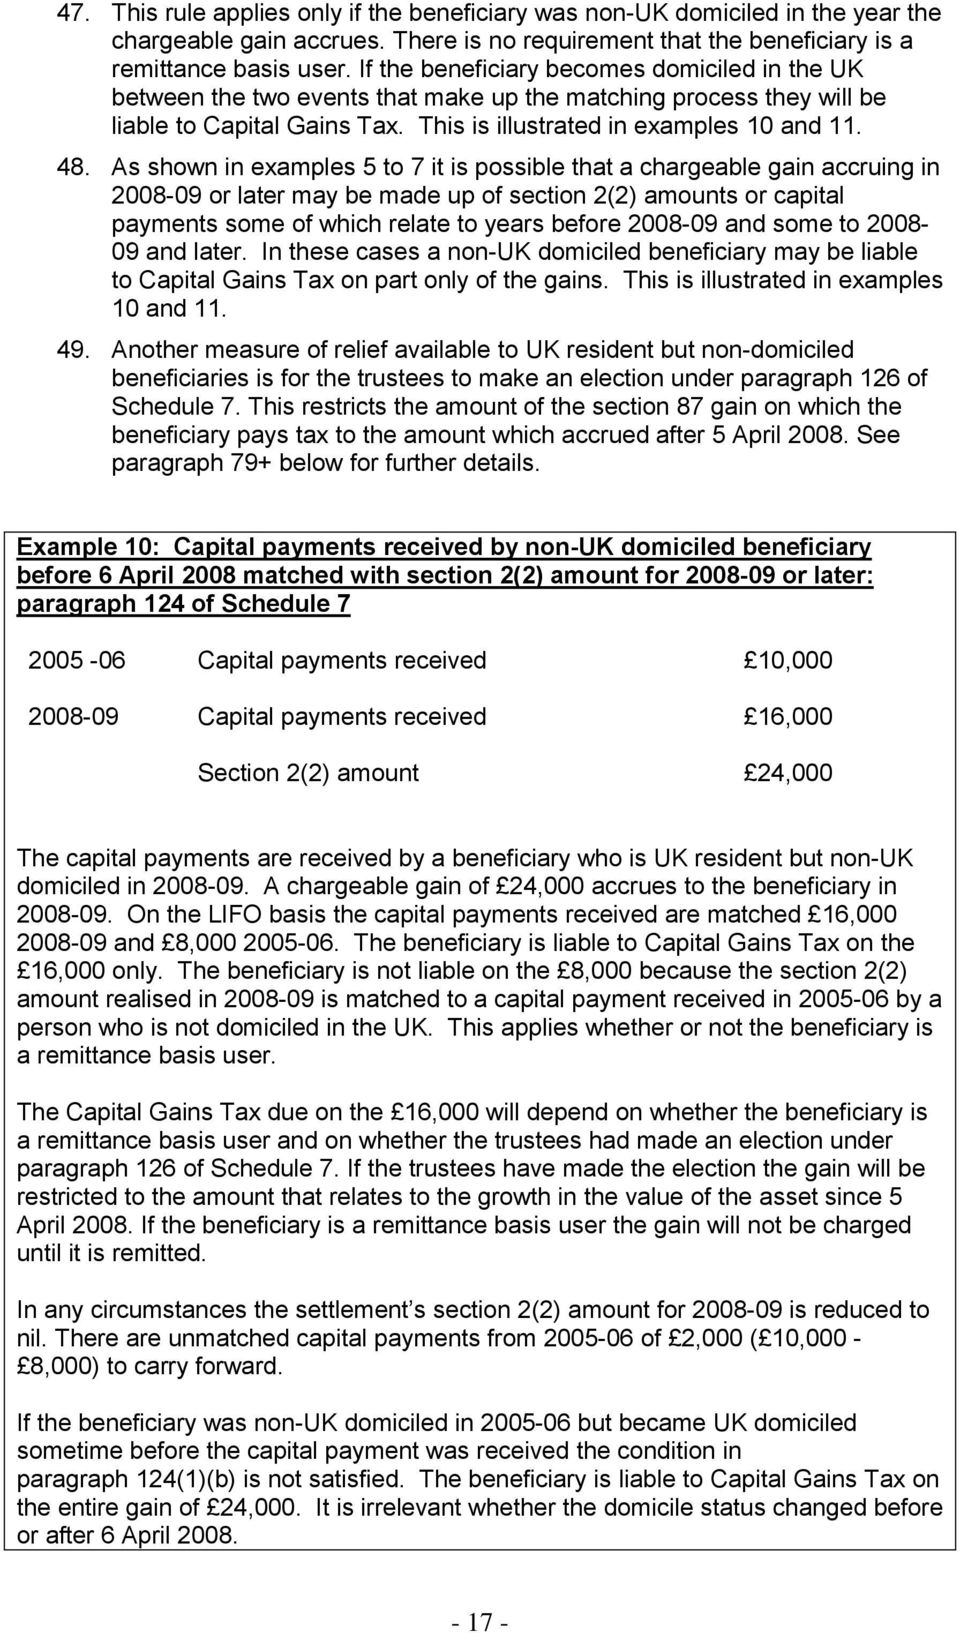 As shown in examples 5 to 7 it is possible that a chargeable gain accruing in 2008-09 or later may be made up of section 2(2) amounts or capital payments some of which relate to years before 2008-09